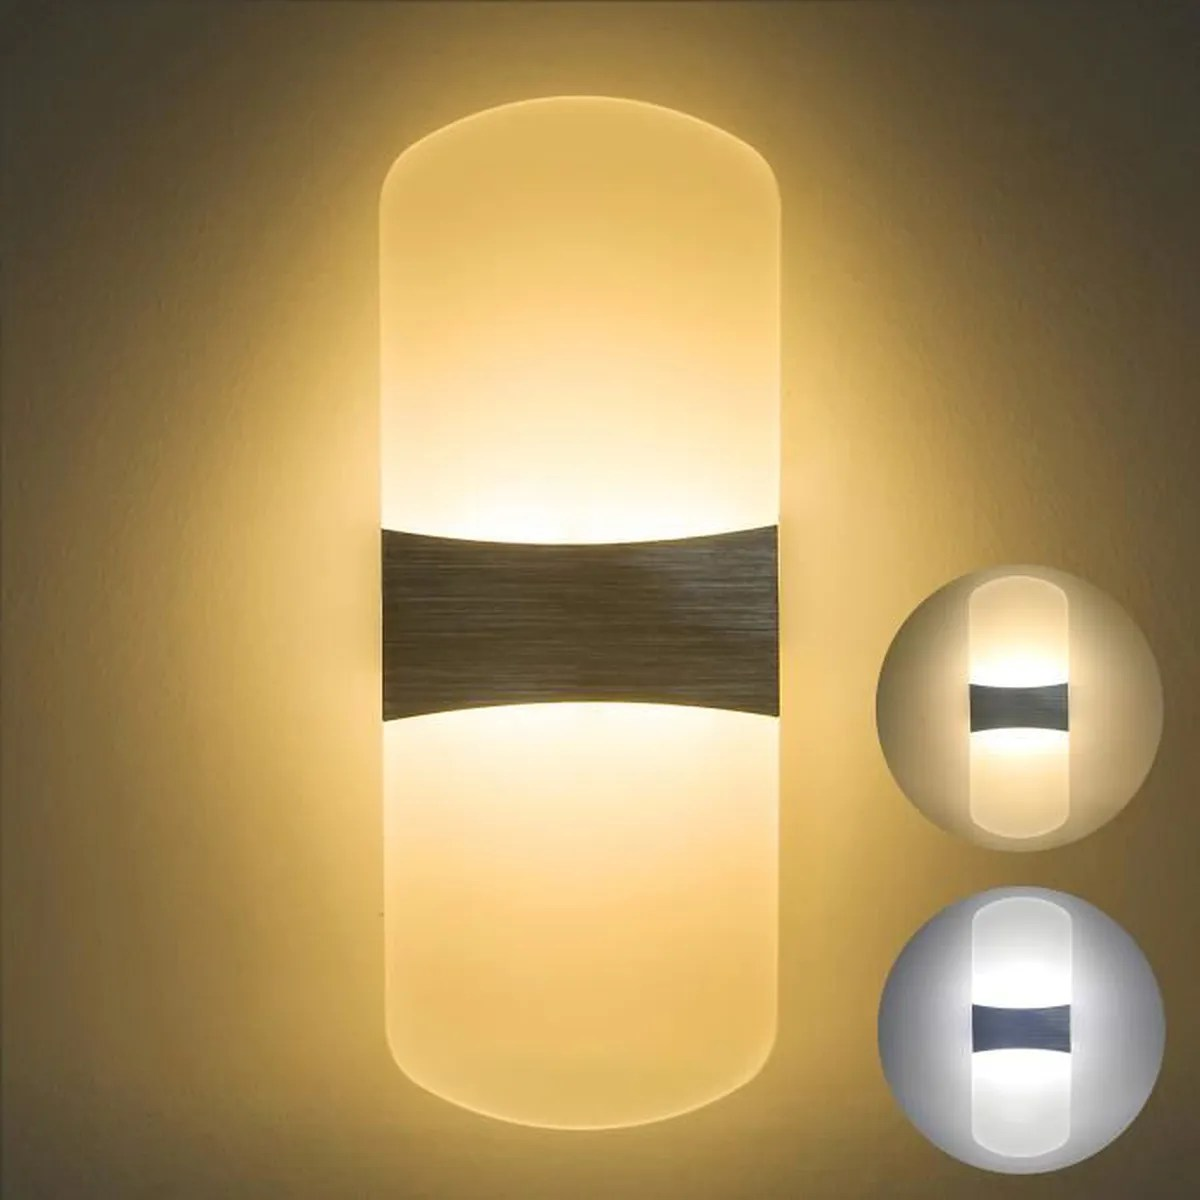 Eclairage Led Mural Interieur Netboat 6w Moderne Aluminium Led Applique Murale Interieur